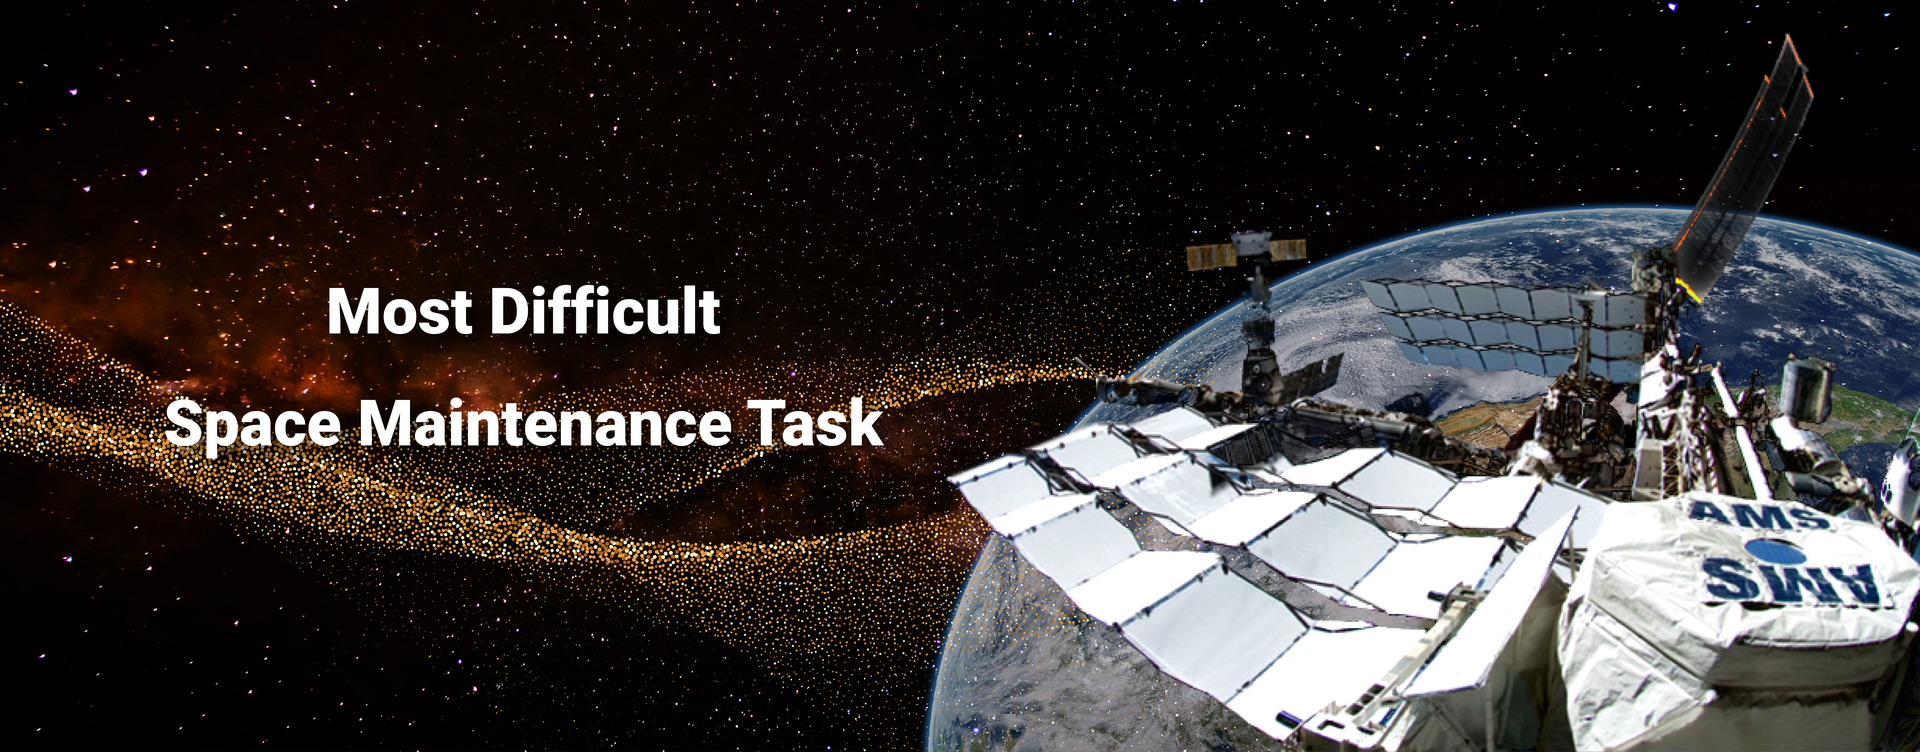 Most Difficult Space Maintenance Task